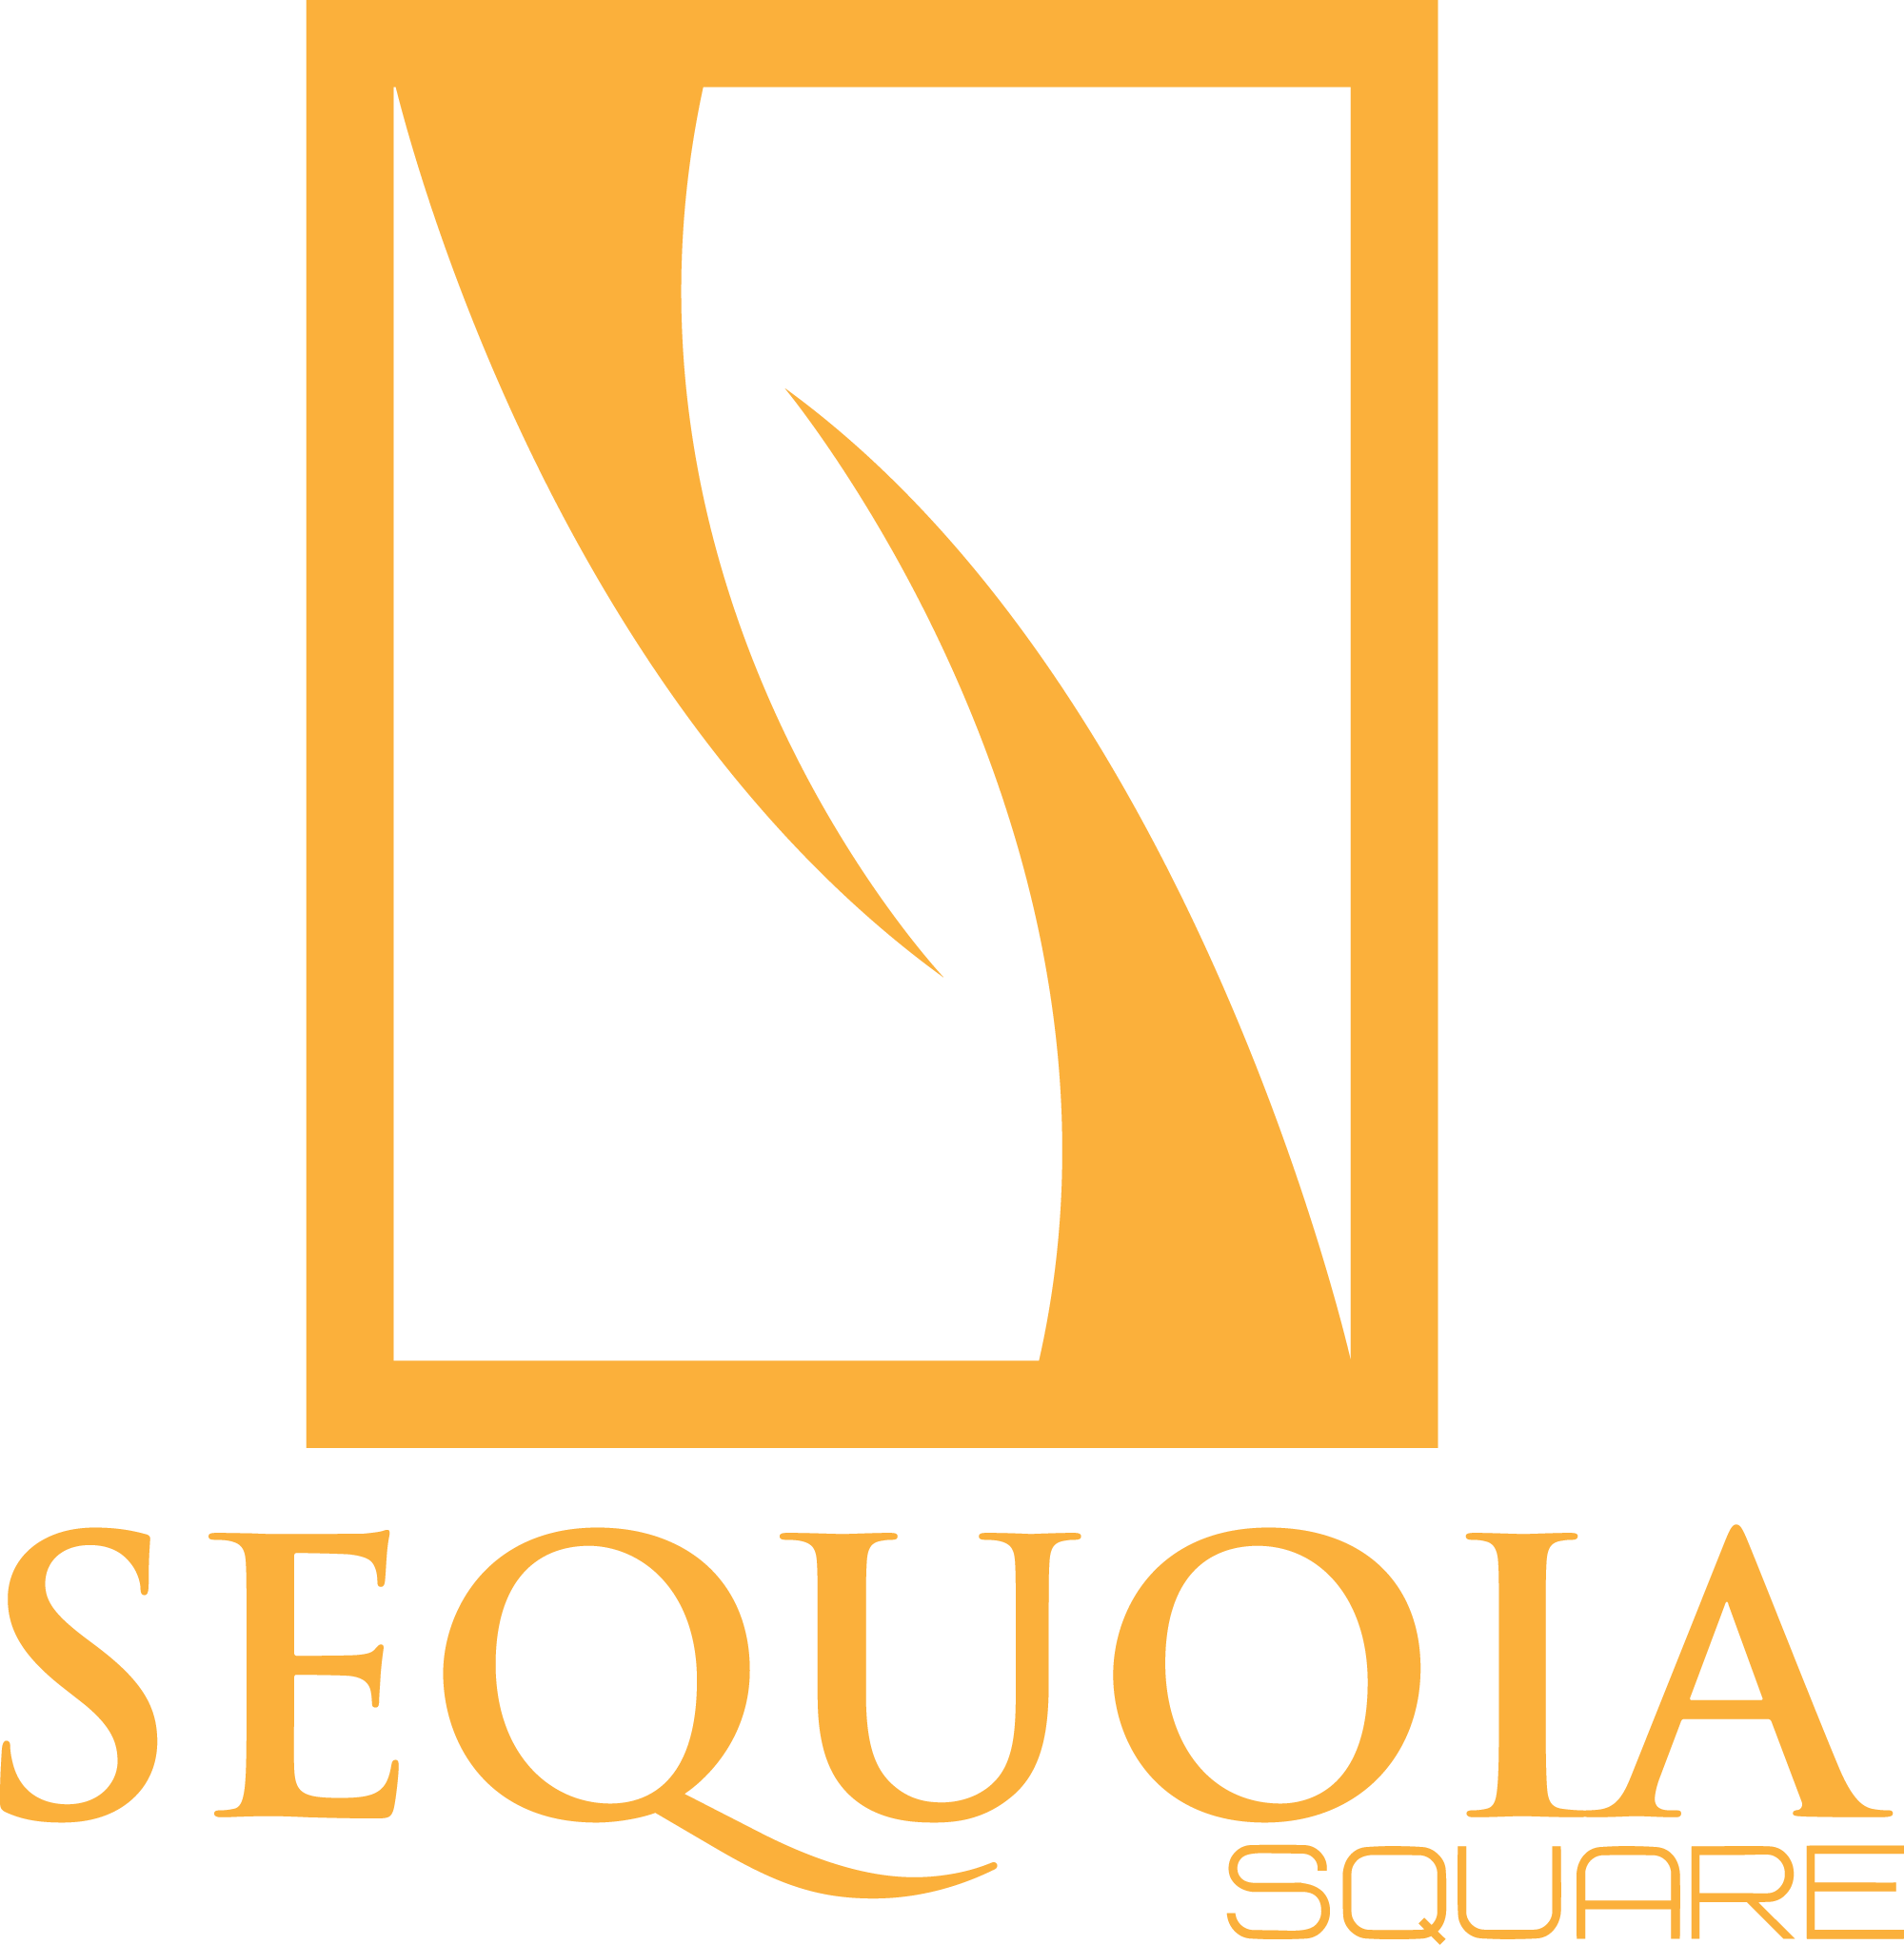 SequoiaSquare